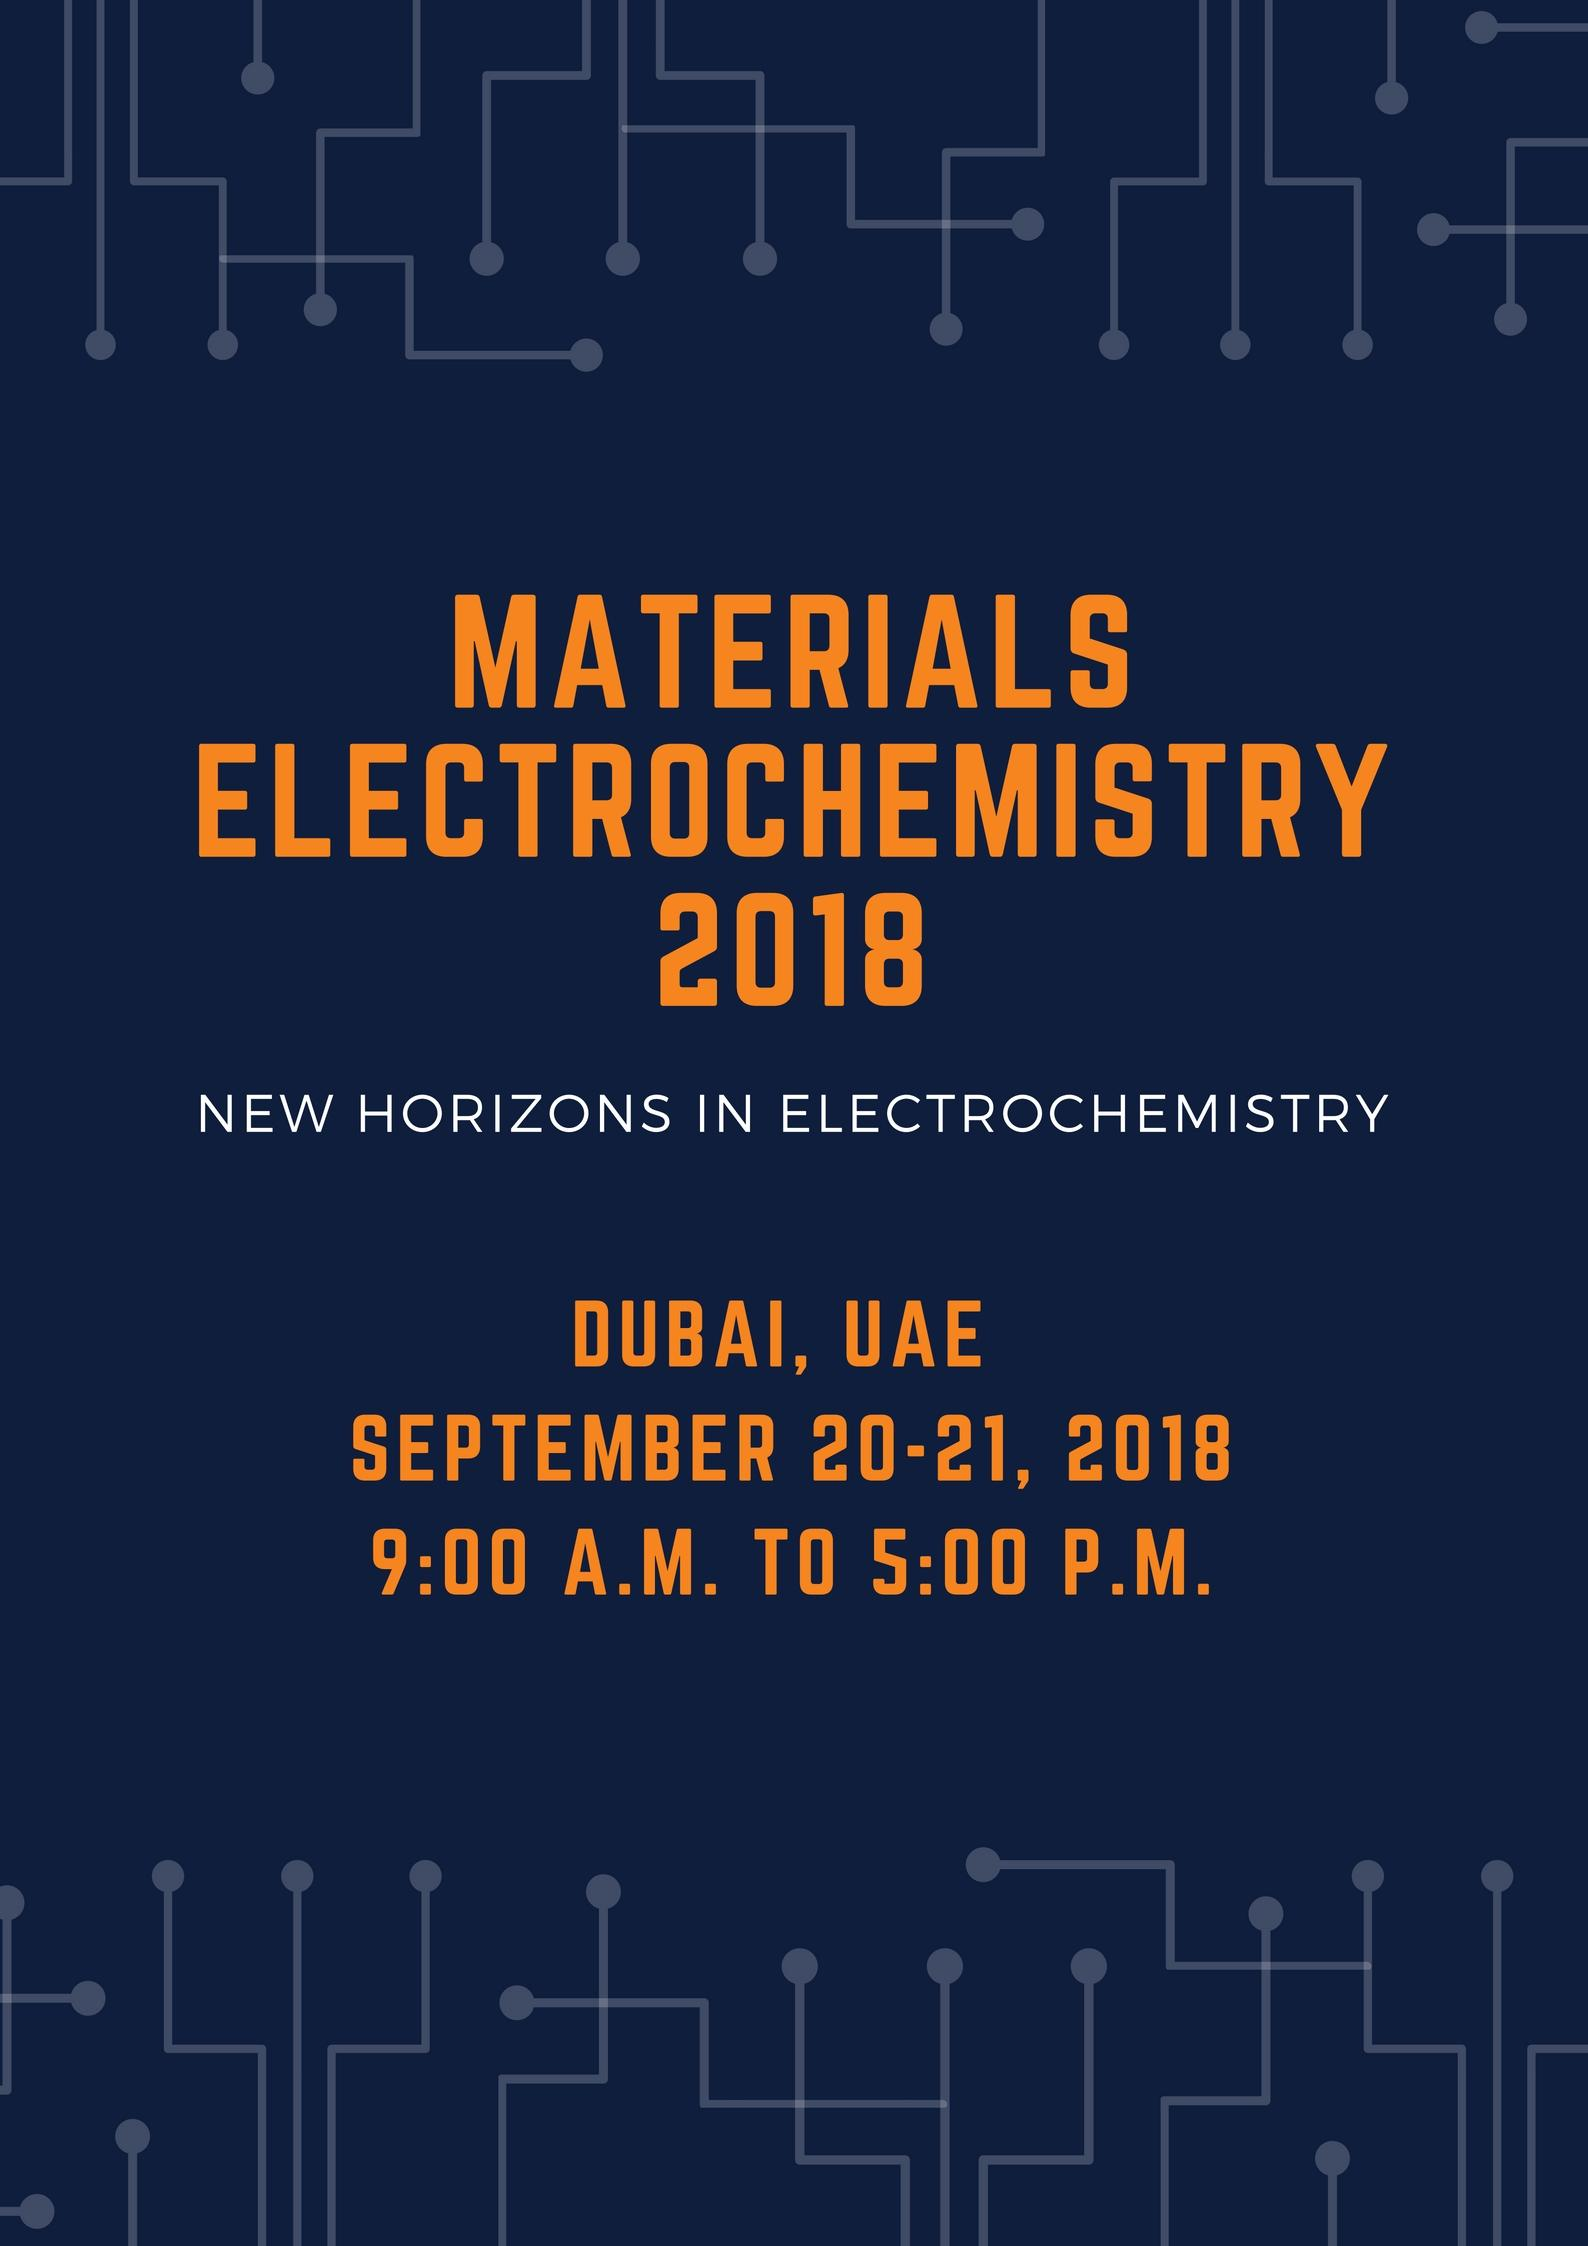 Materials Electrochemistry Conference: Advancements and Breakthroughs